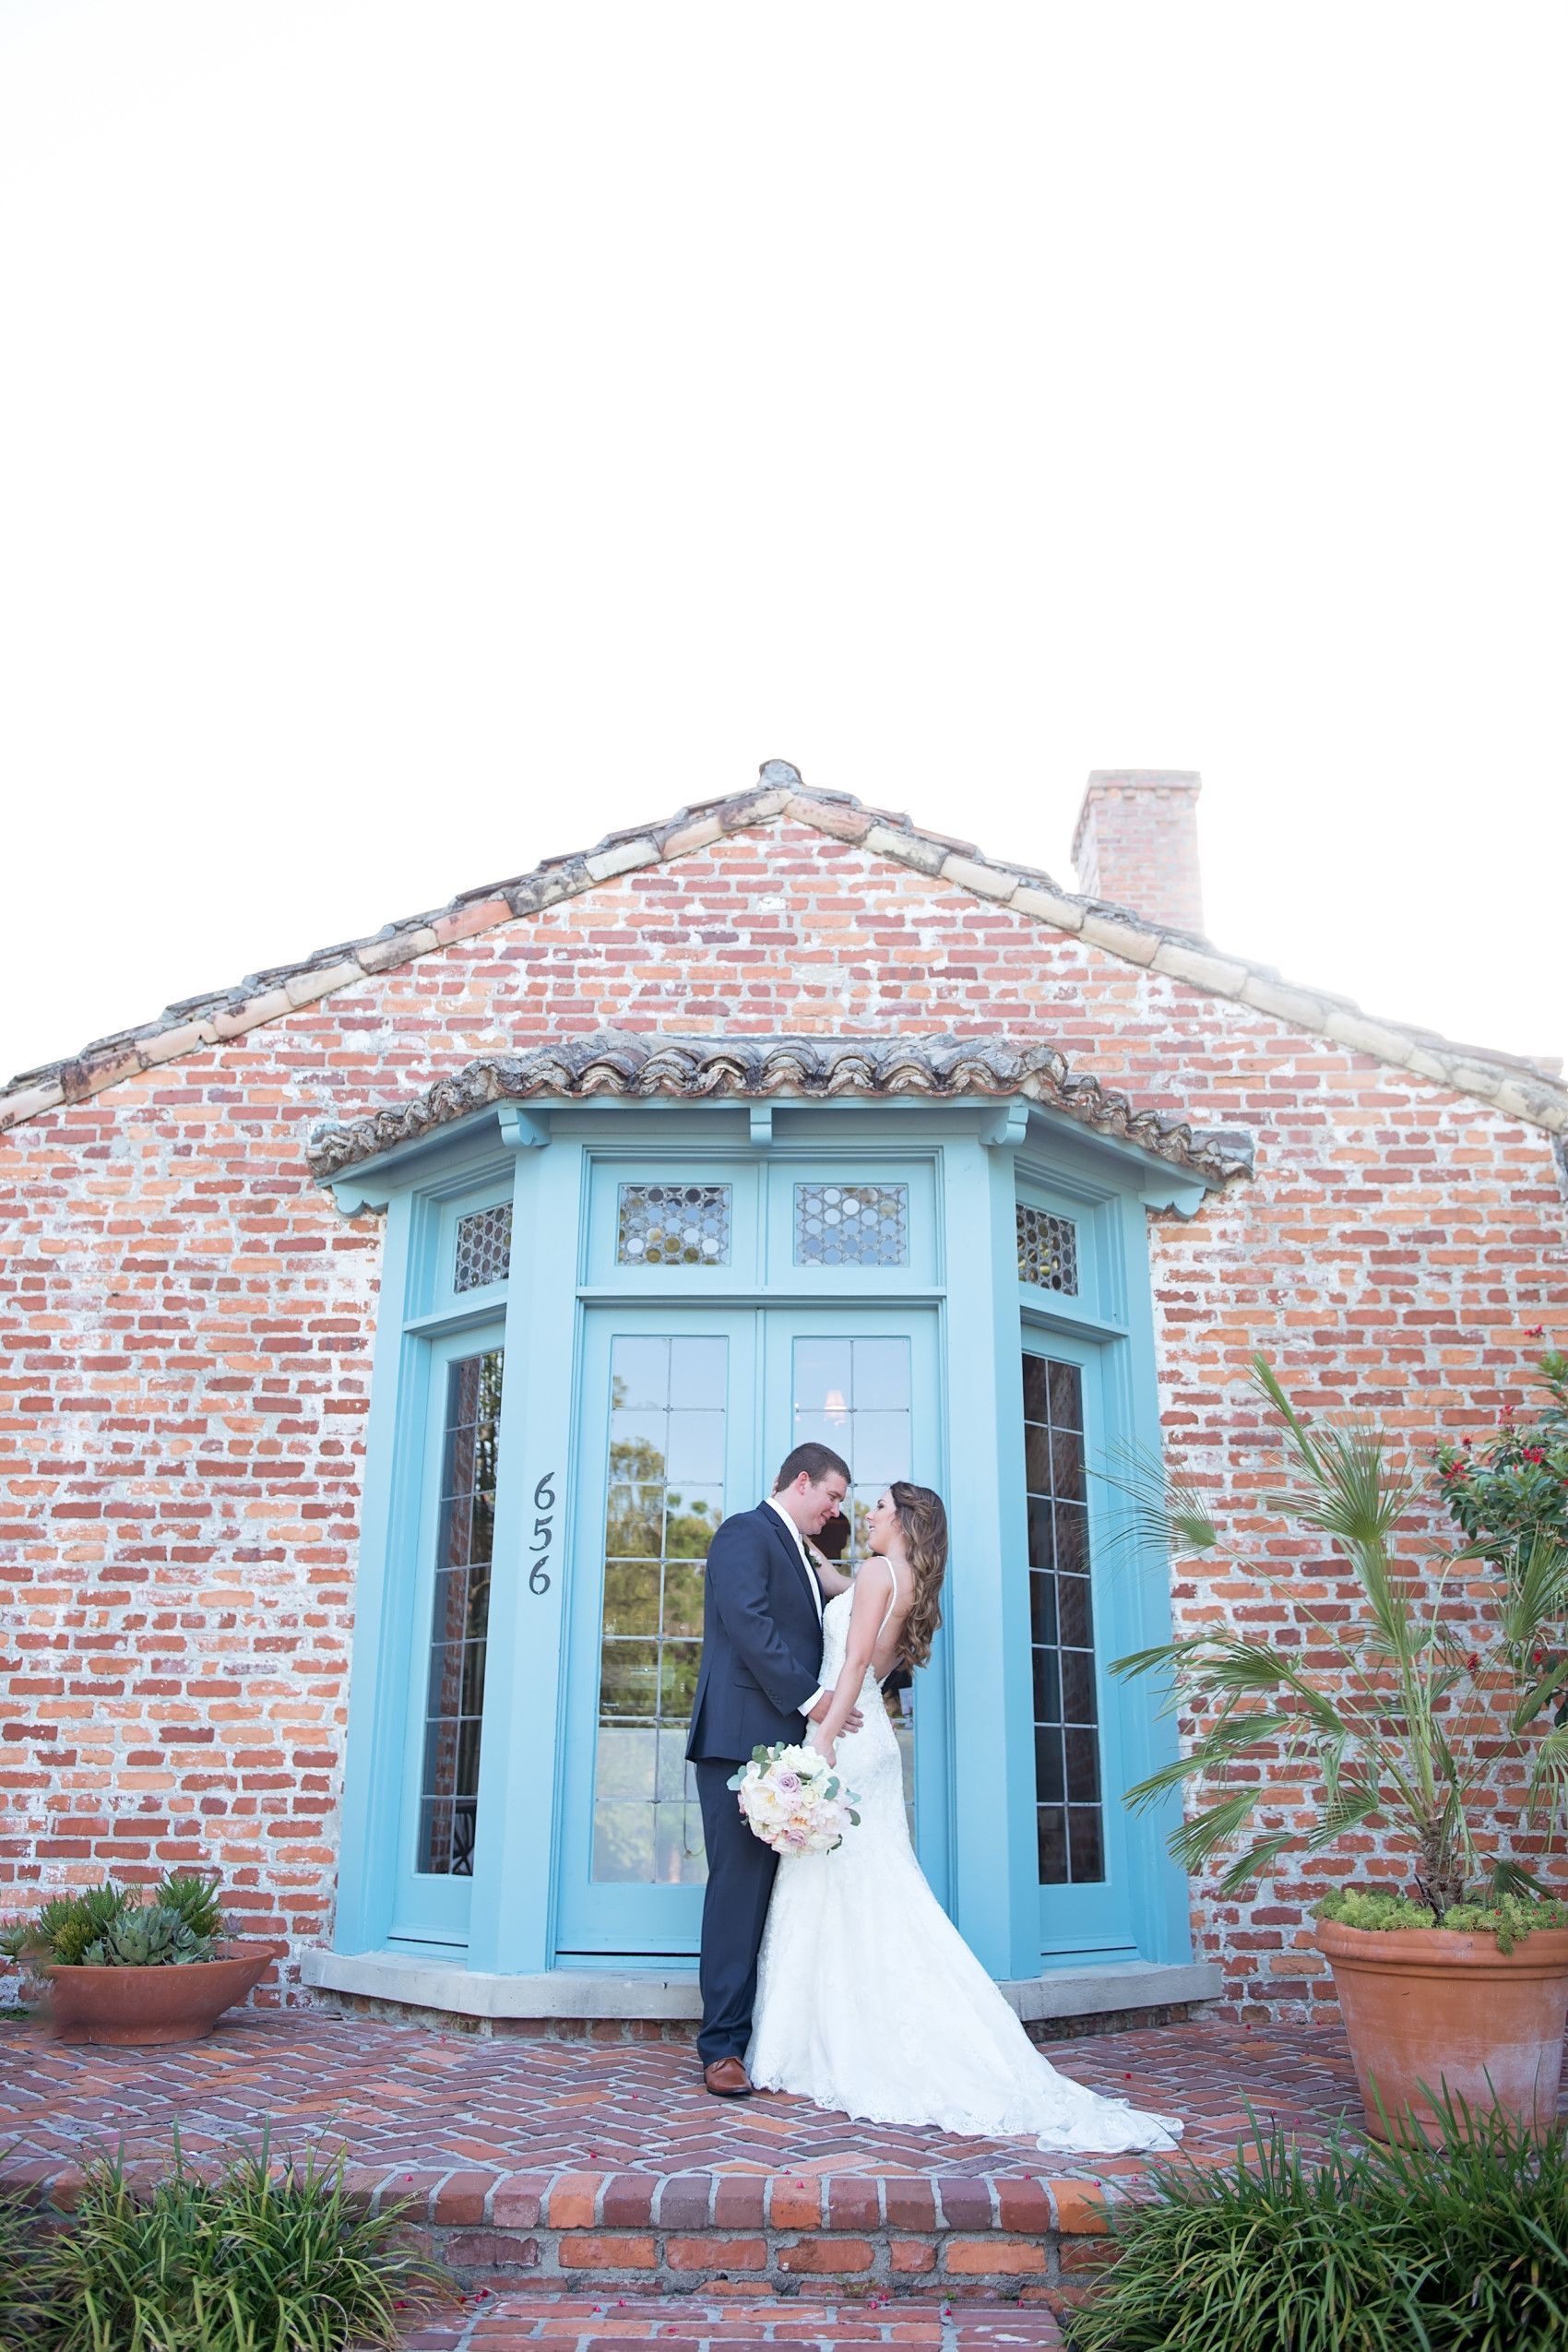 Orlando Wedding Photographer, Jamie Reinhart Photography, Bride and Groom